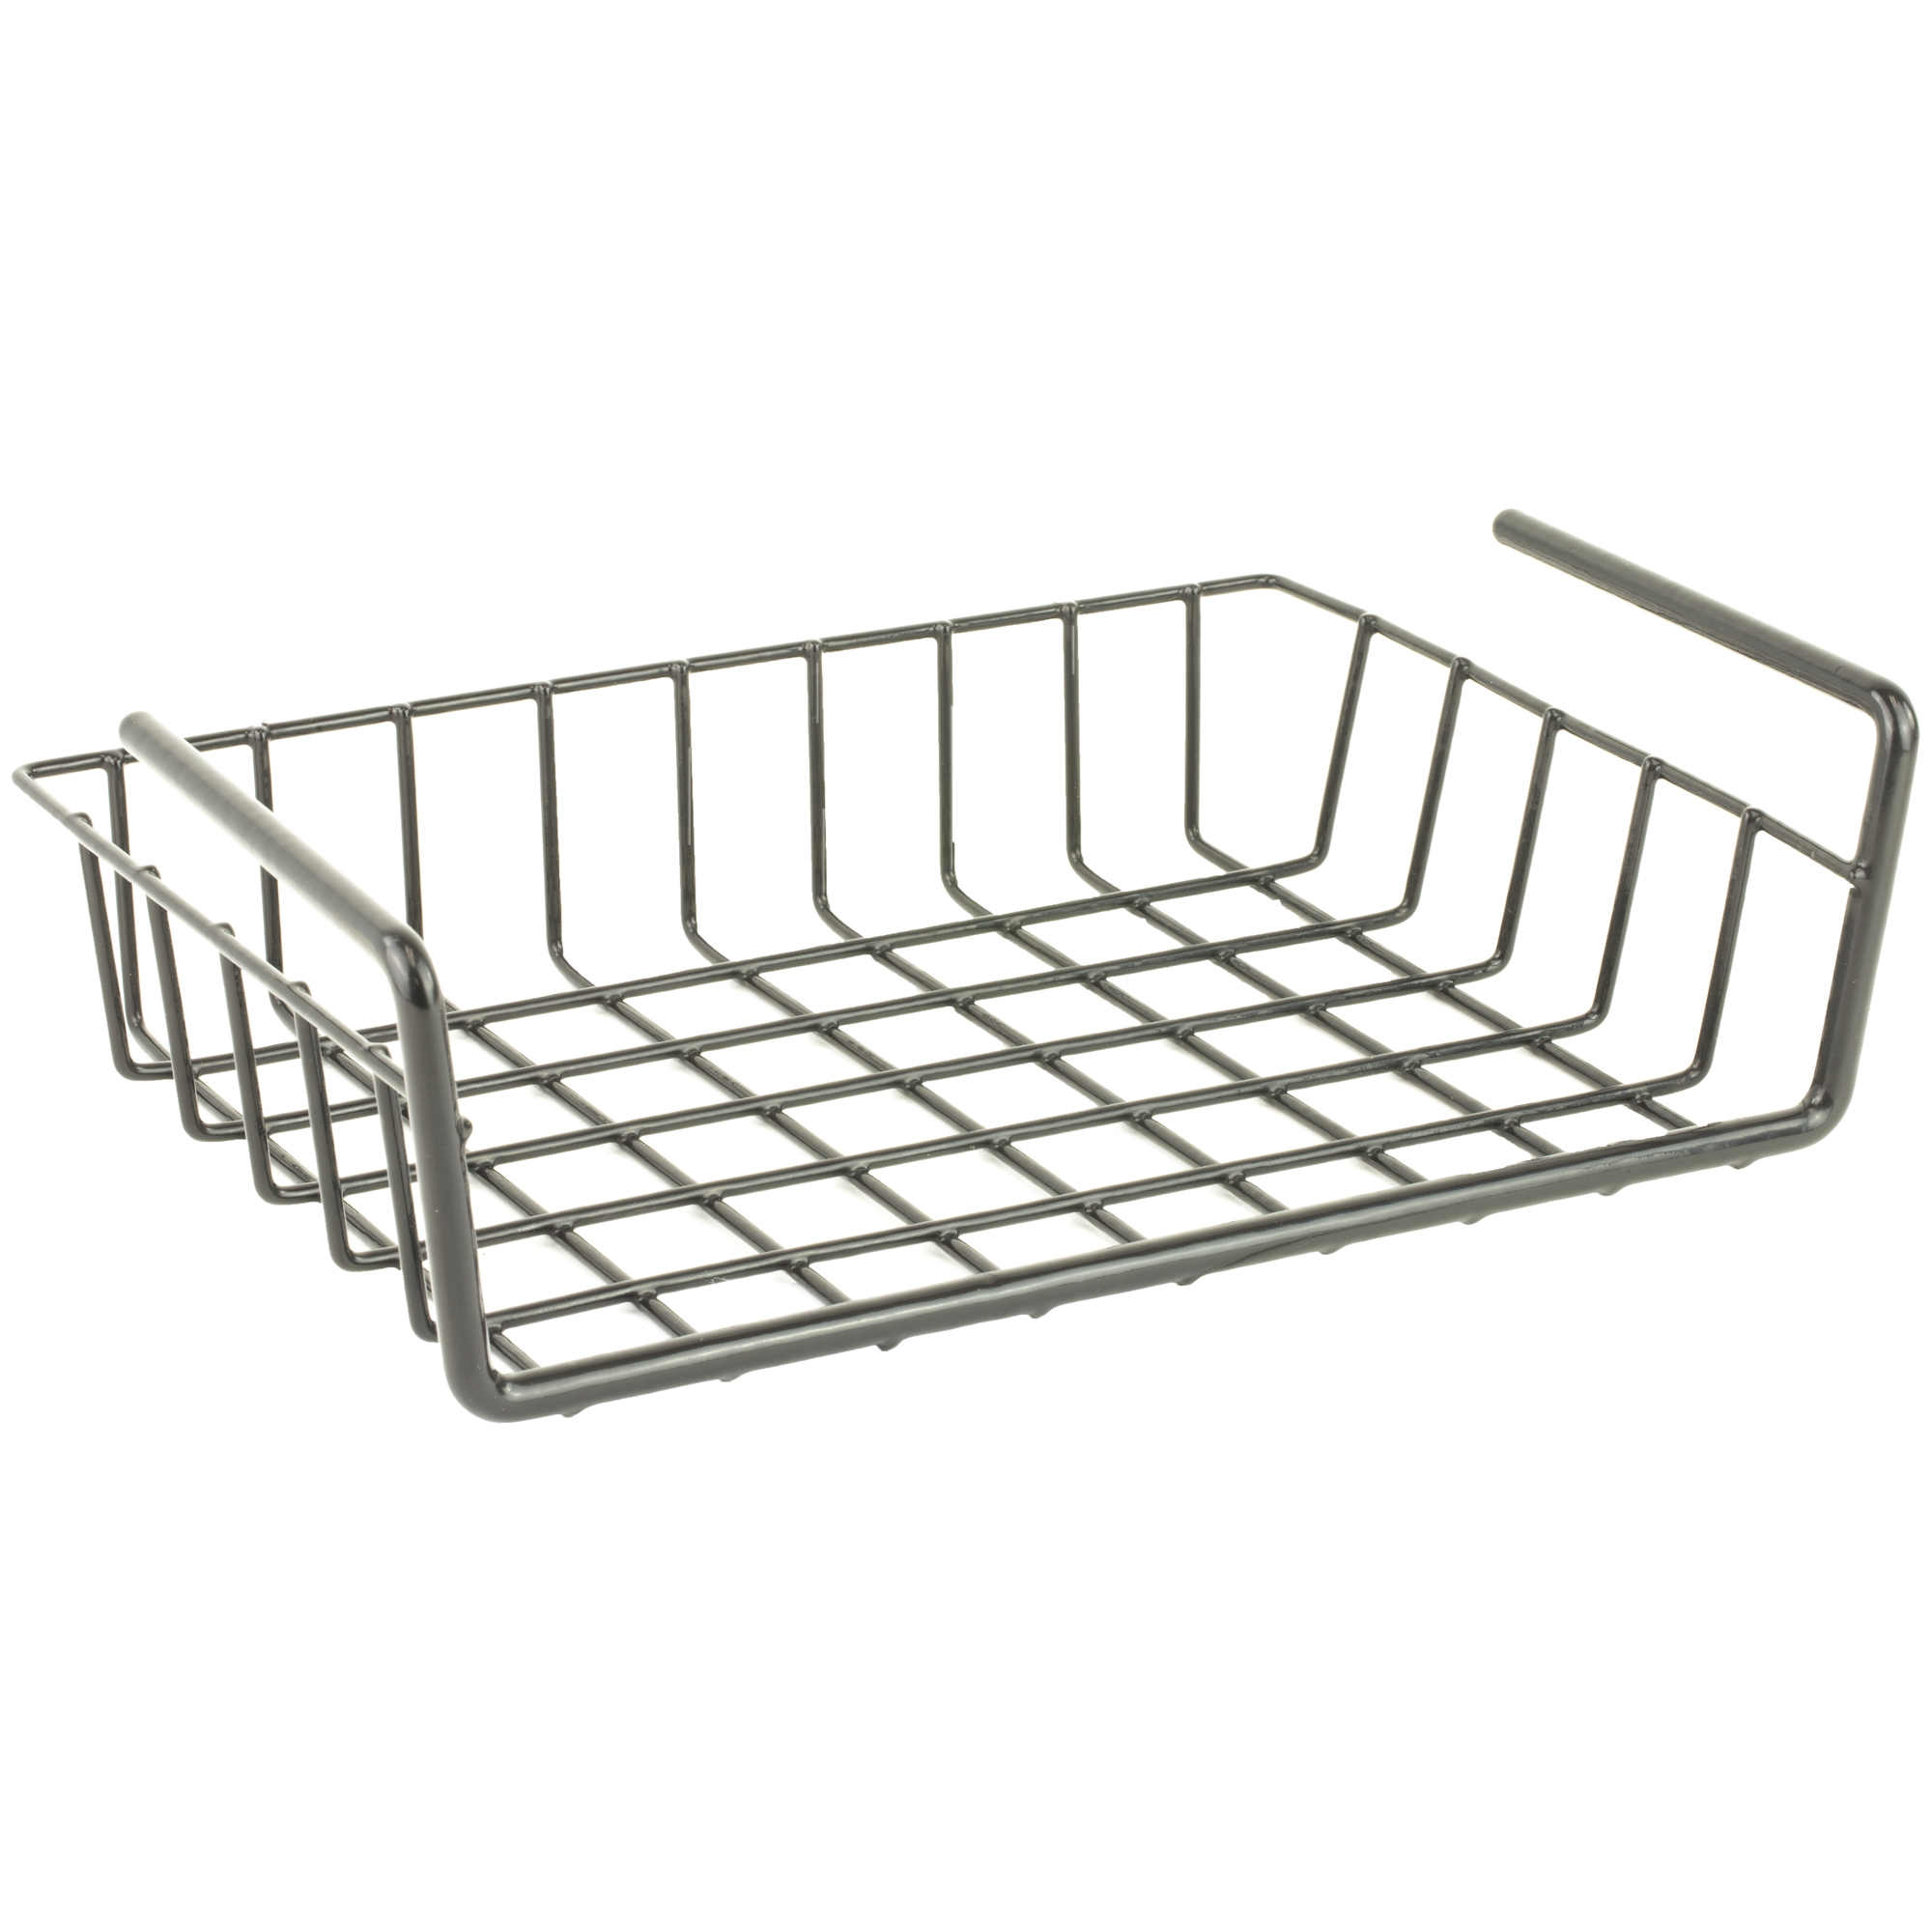 Snapsafe Hanging Shelf Basket 8.5x11